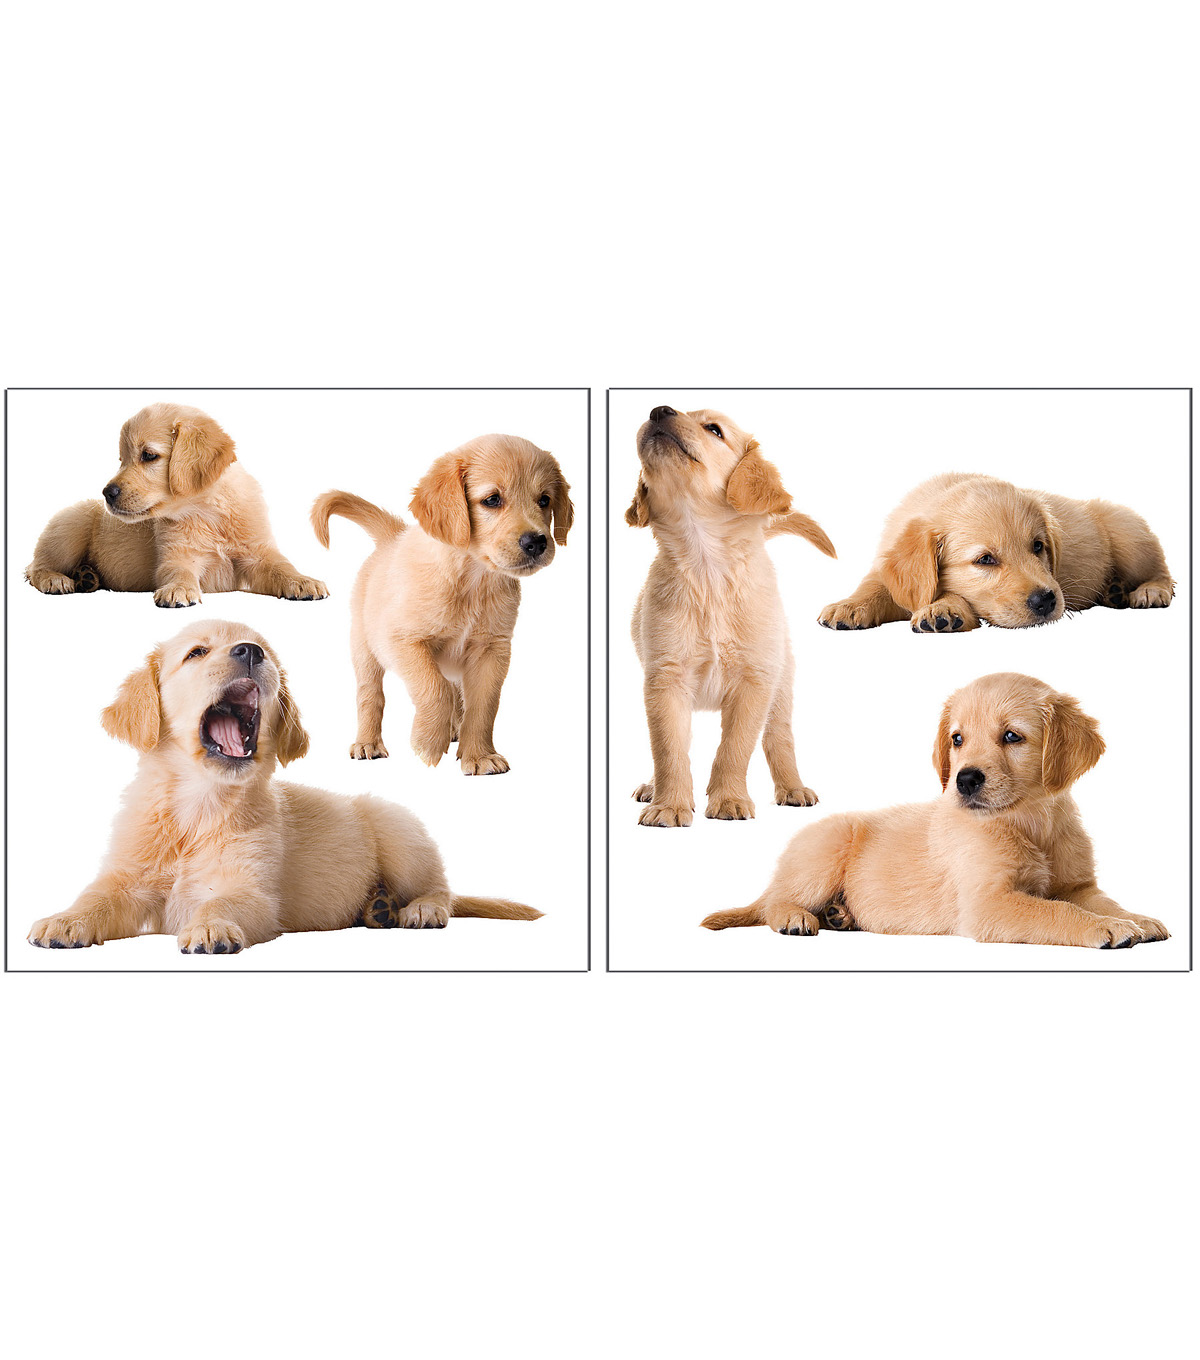 Home Decor Puppies Wall Stickers, 6 Piece Set